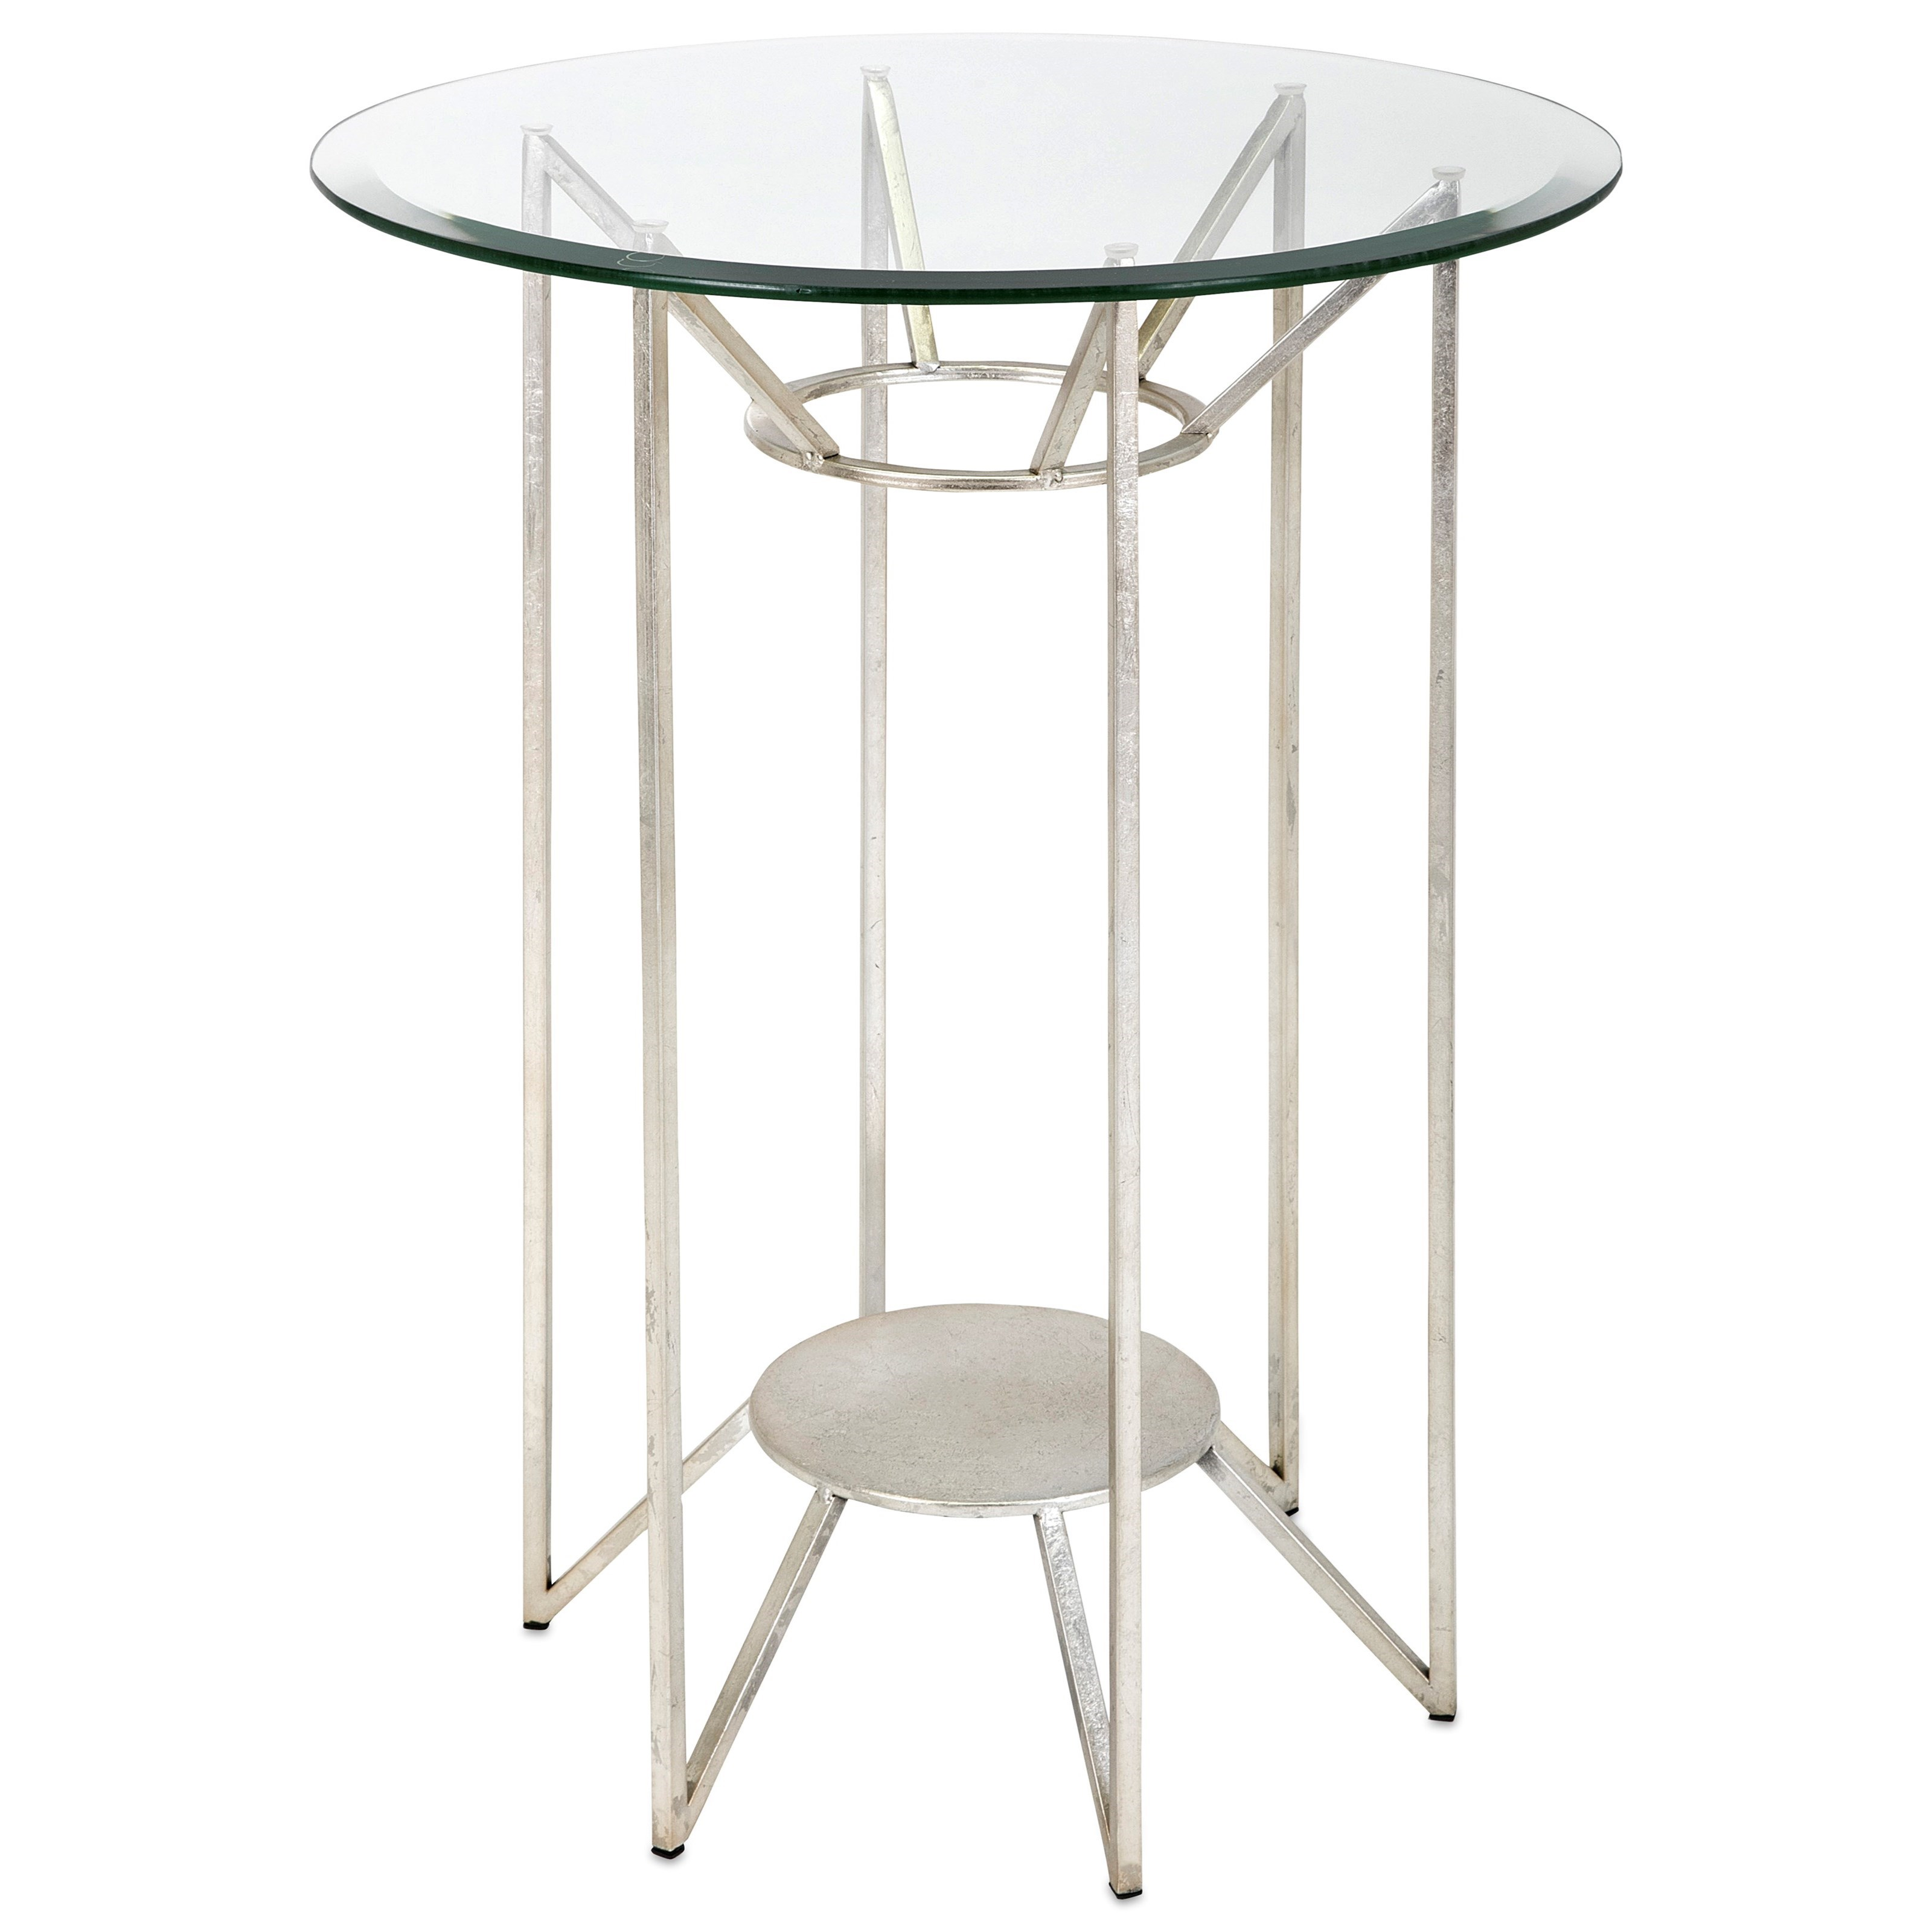 Solei Metal and Glass Table